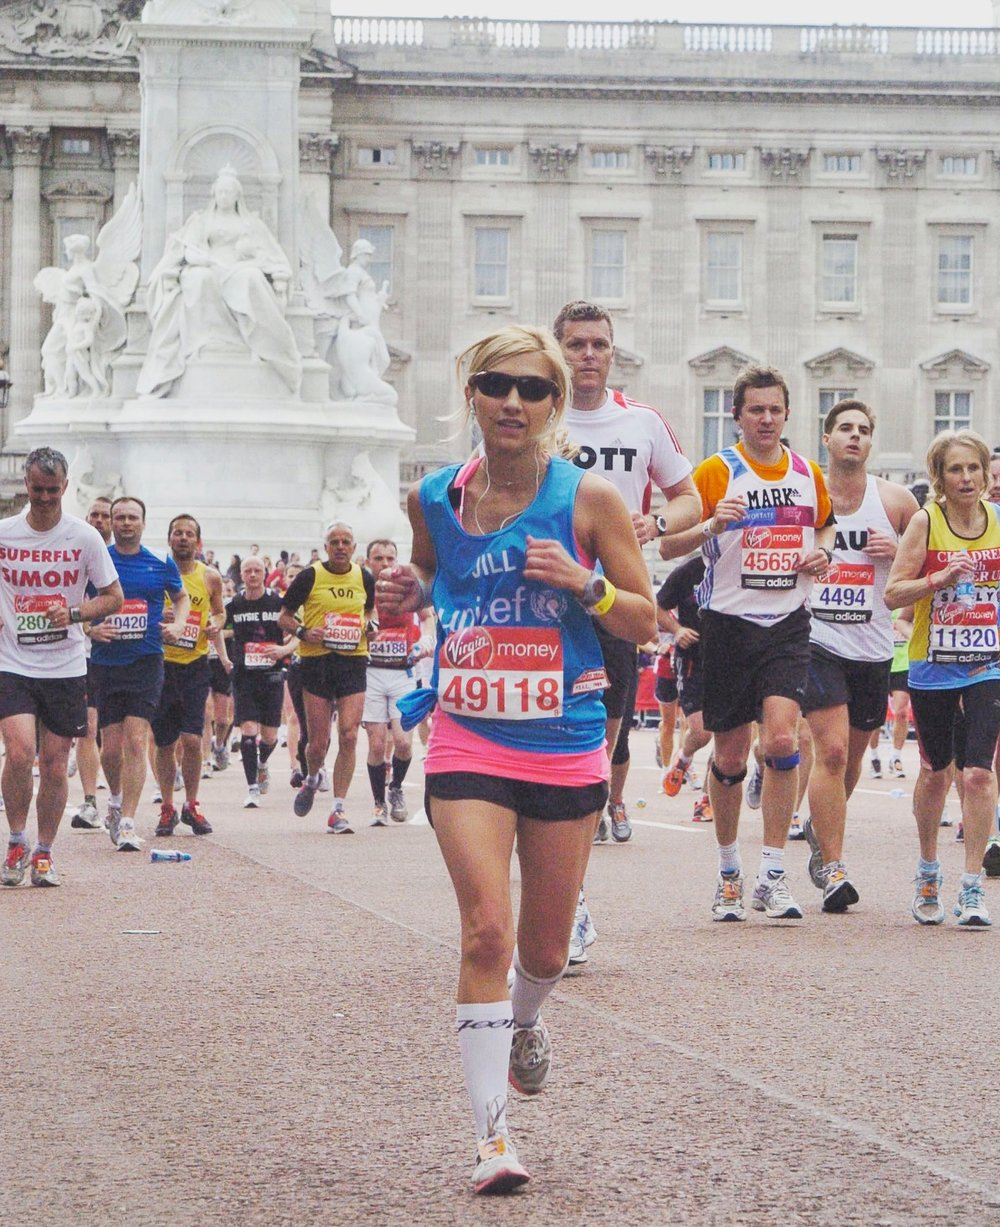 The 2012 London Marathon. I was just about to finish after passing Buckingham Palace!